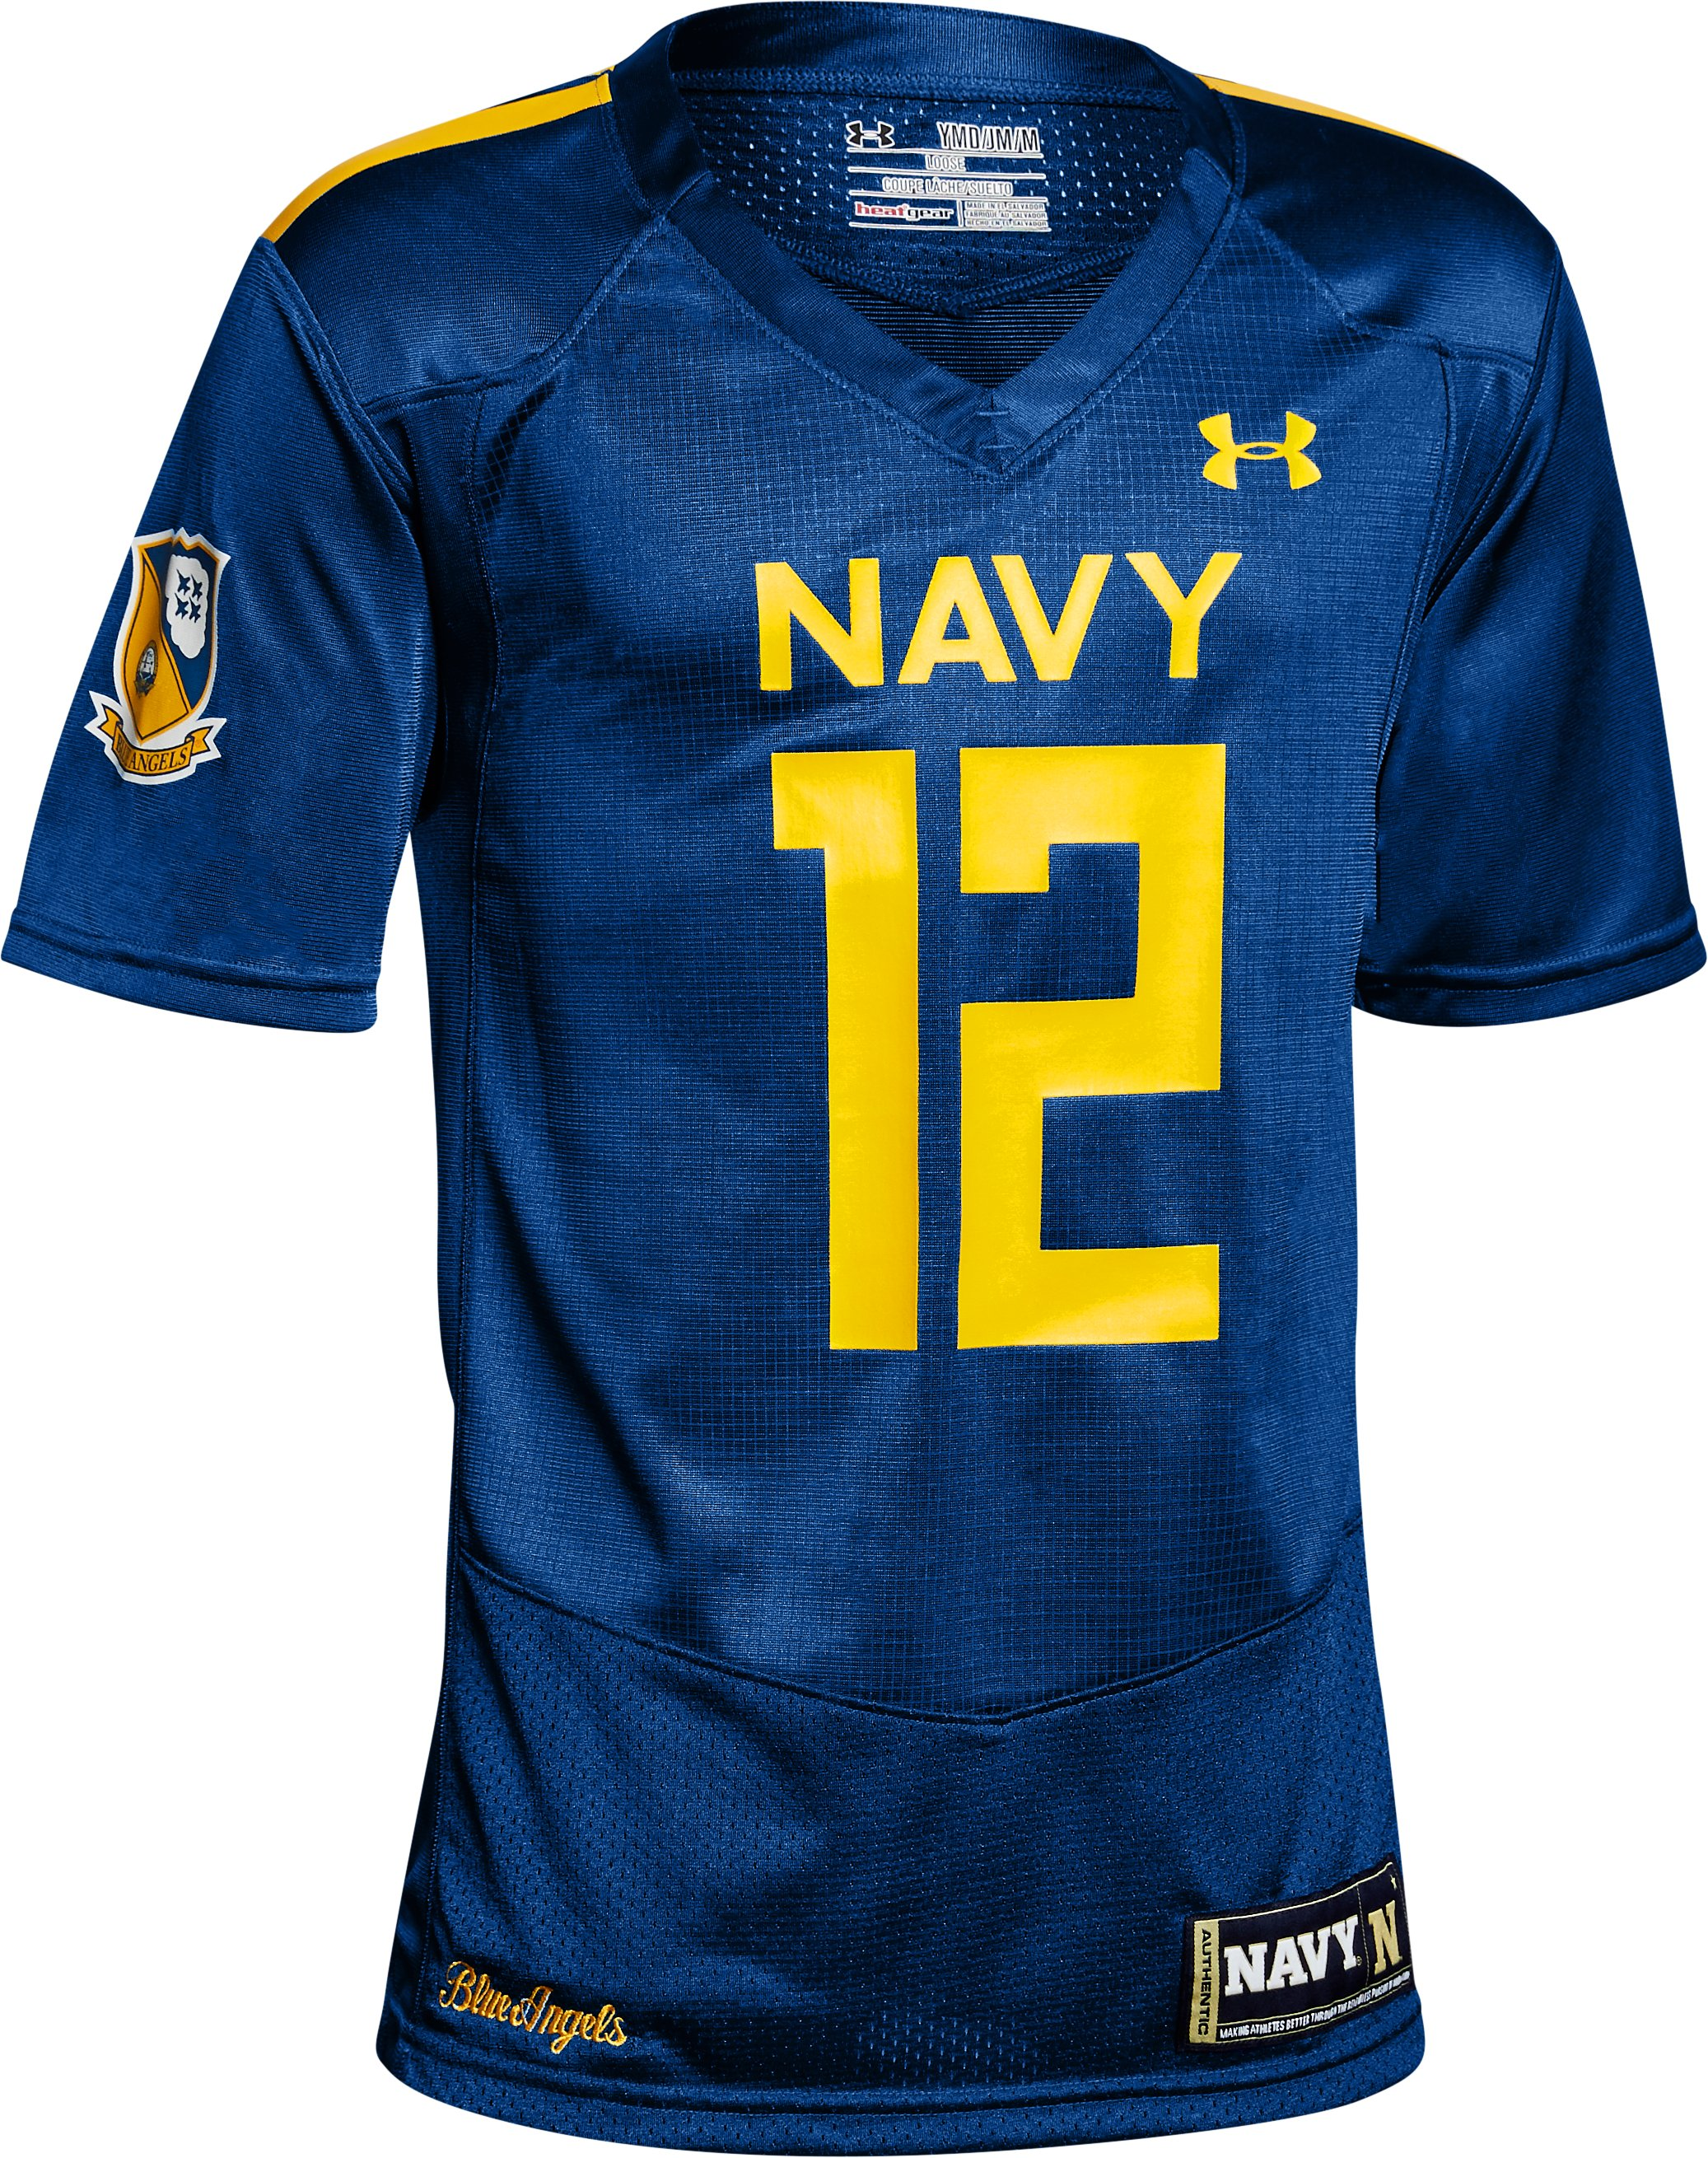 Boy's Naval Academy Replica Jersey, Royal, undefined